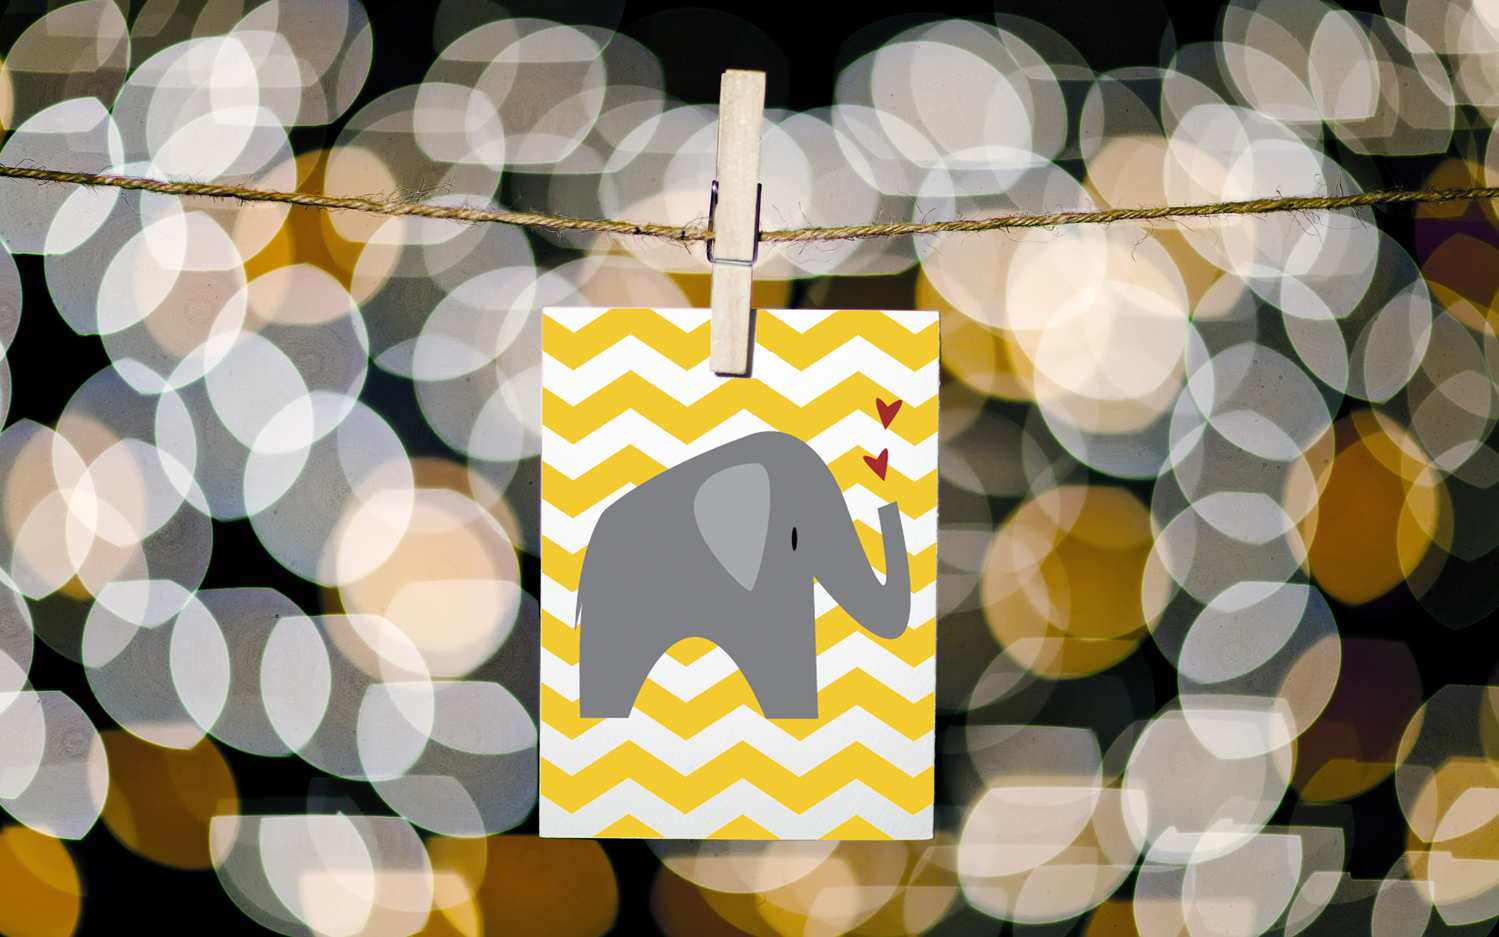 eLEPHANT_cHEVRON_LiGHTS_bG-eTSY